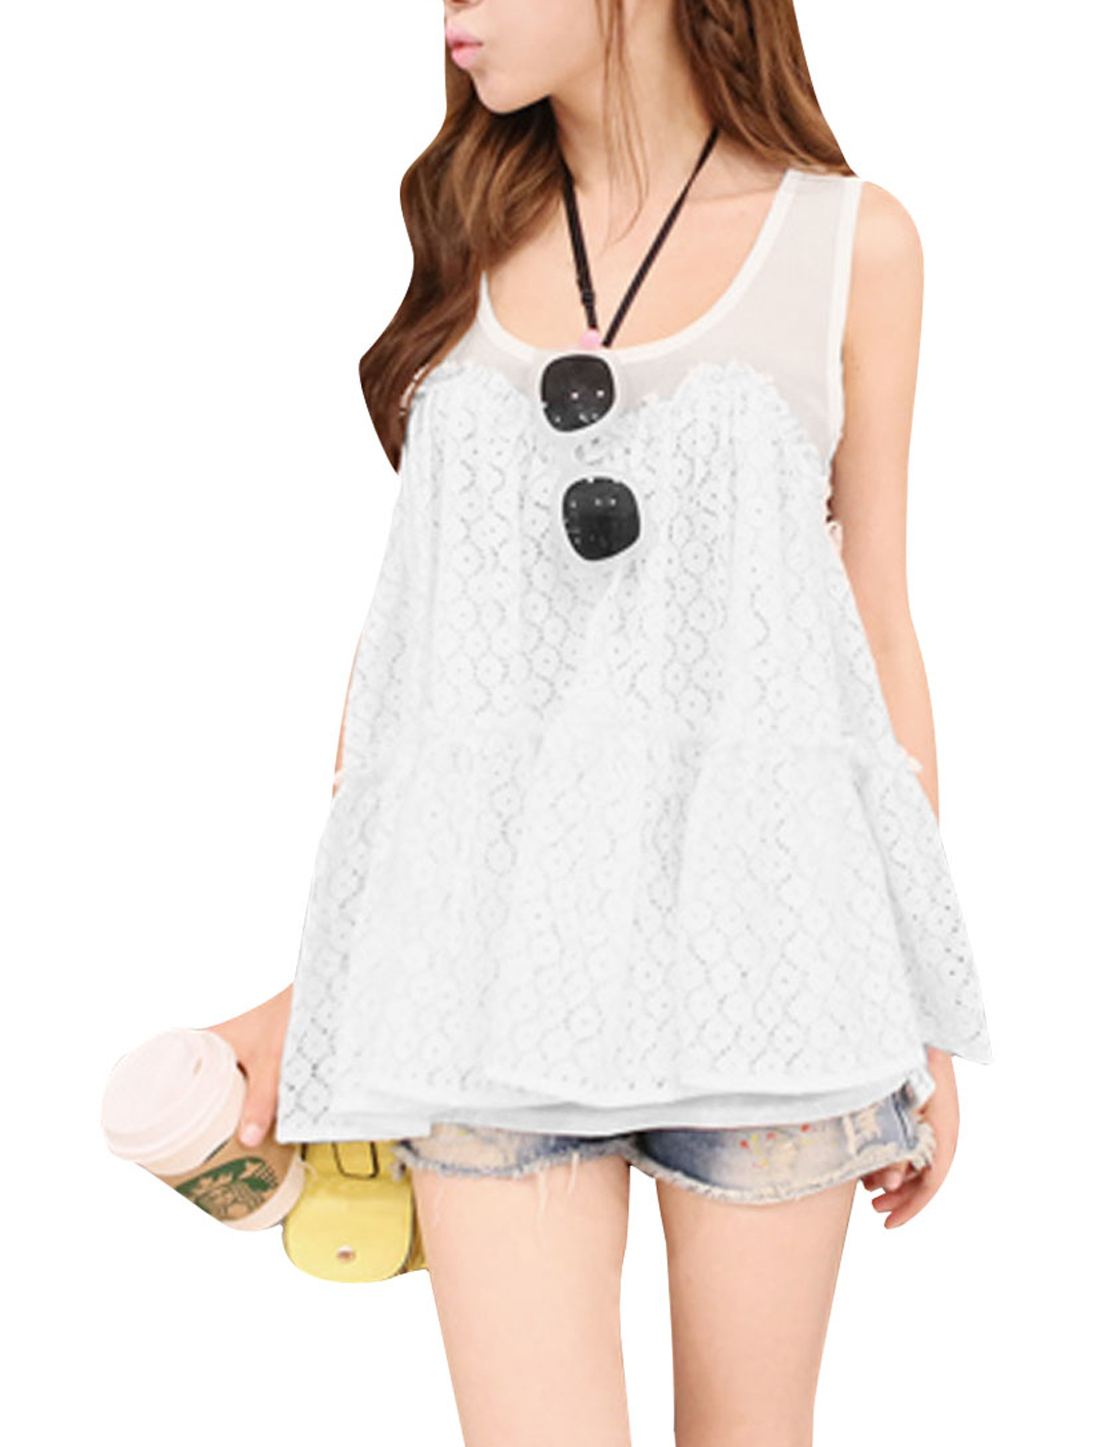 Lady White Sleeveless Flower Design Lace Tank Top S